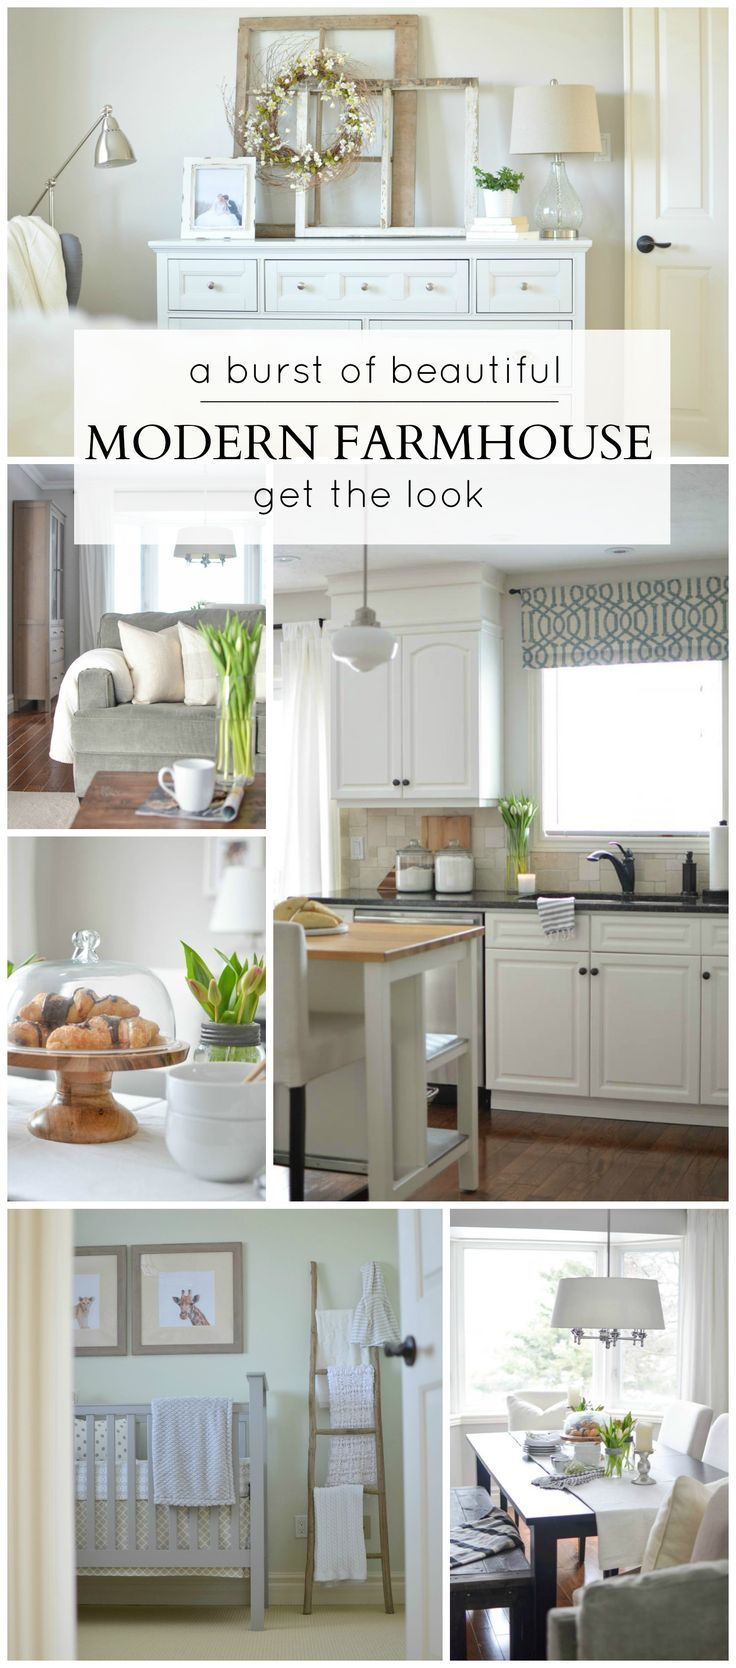 Get The Look Of This Beautiful Modern Farmhouse | A Burst Of Beautiful